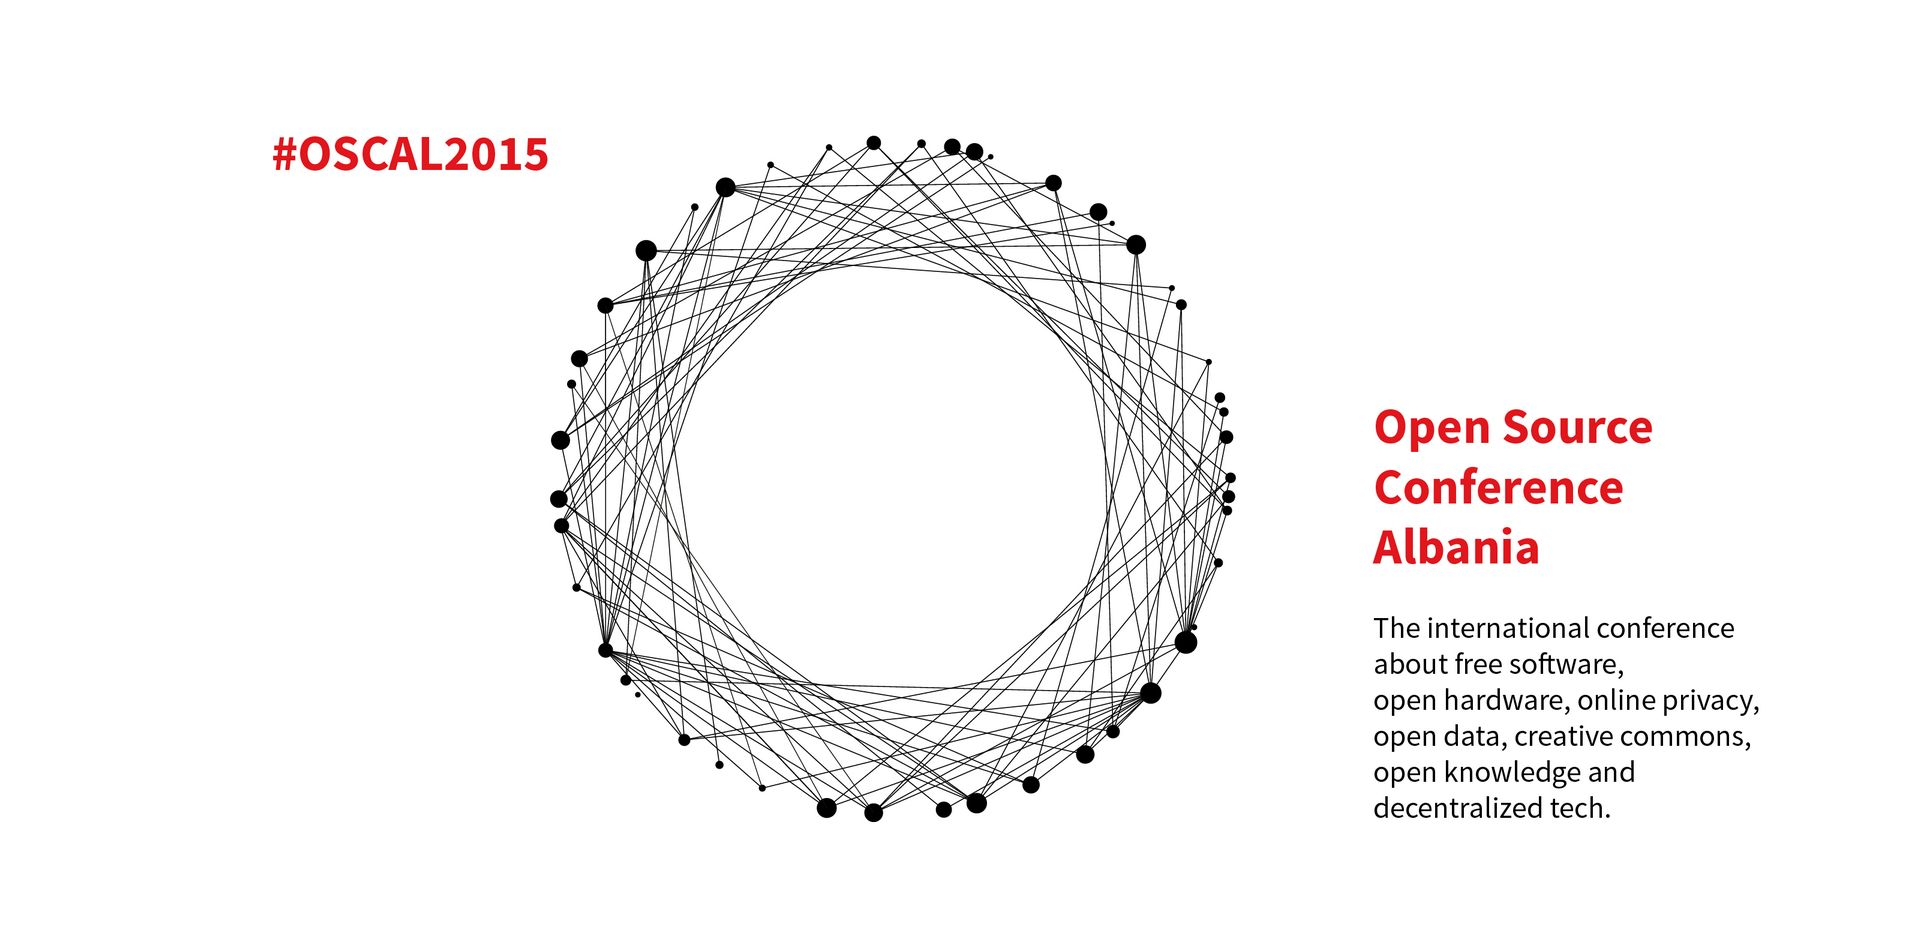 Open Source Conference Albania, OSCAL 2015